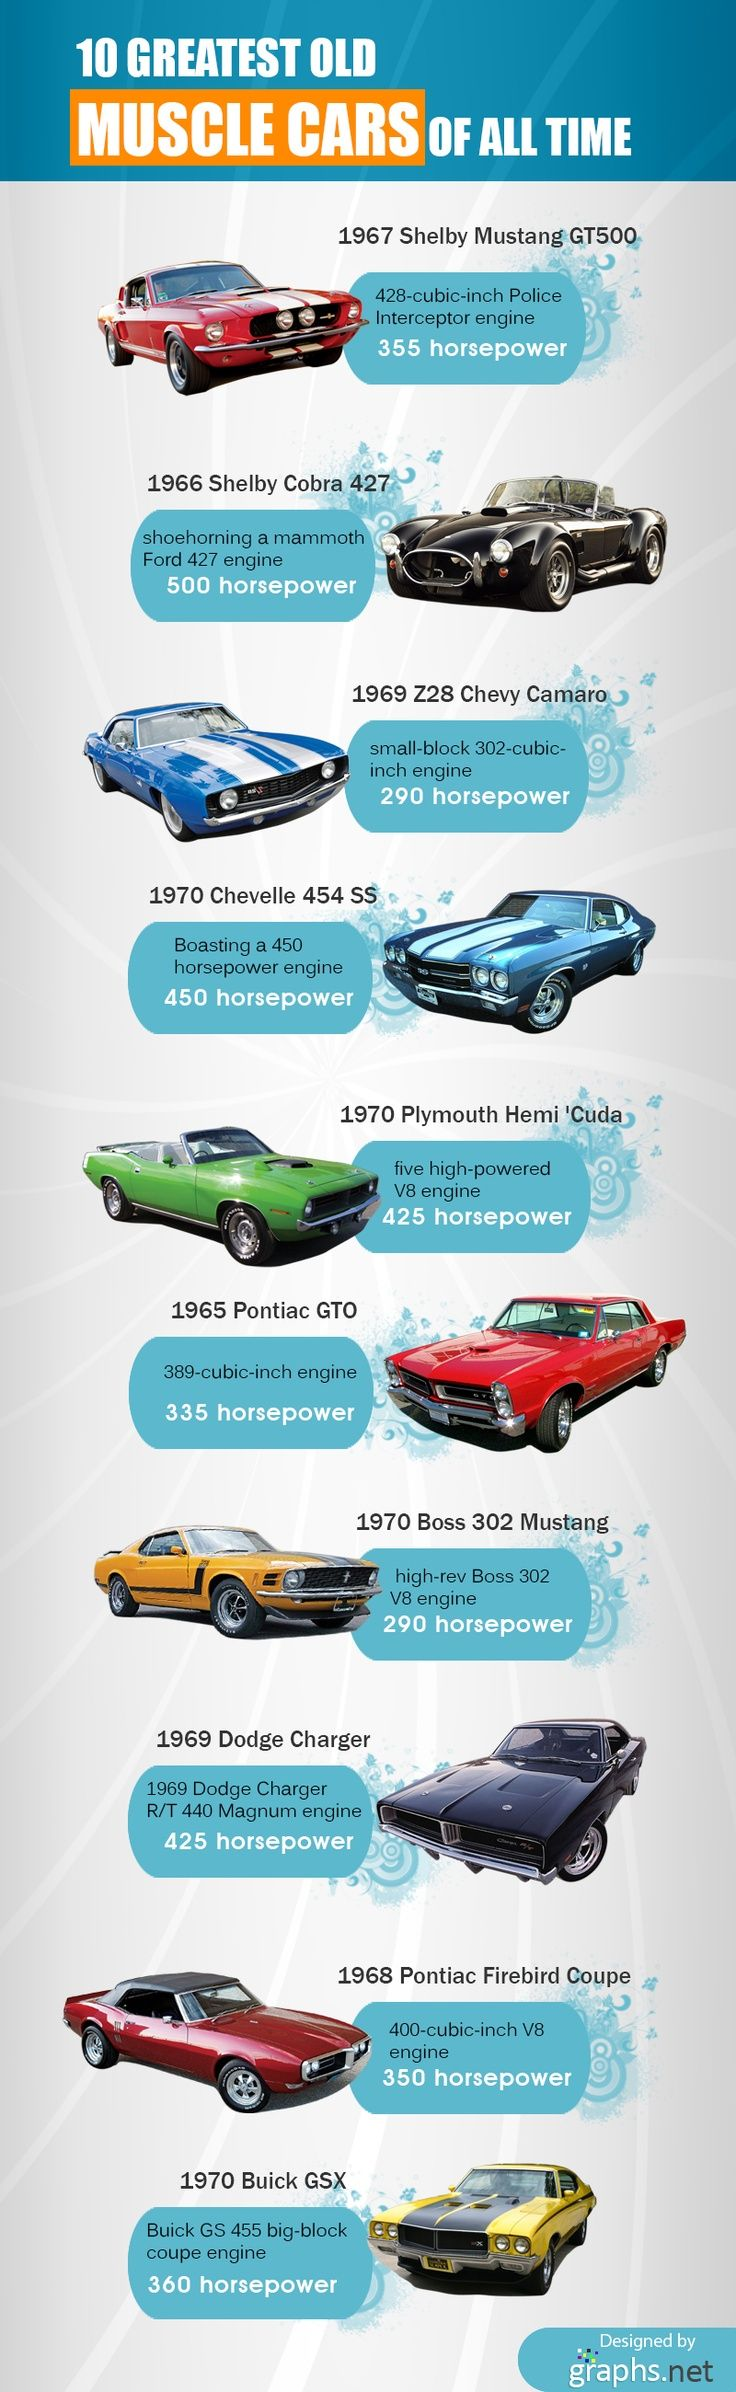 Do you agree with this list of the 10 Greatest Old Muscle Cars of All Time?